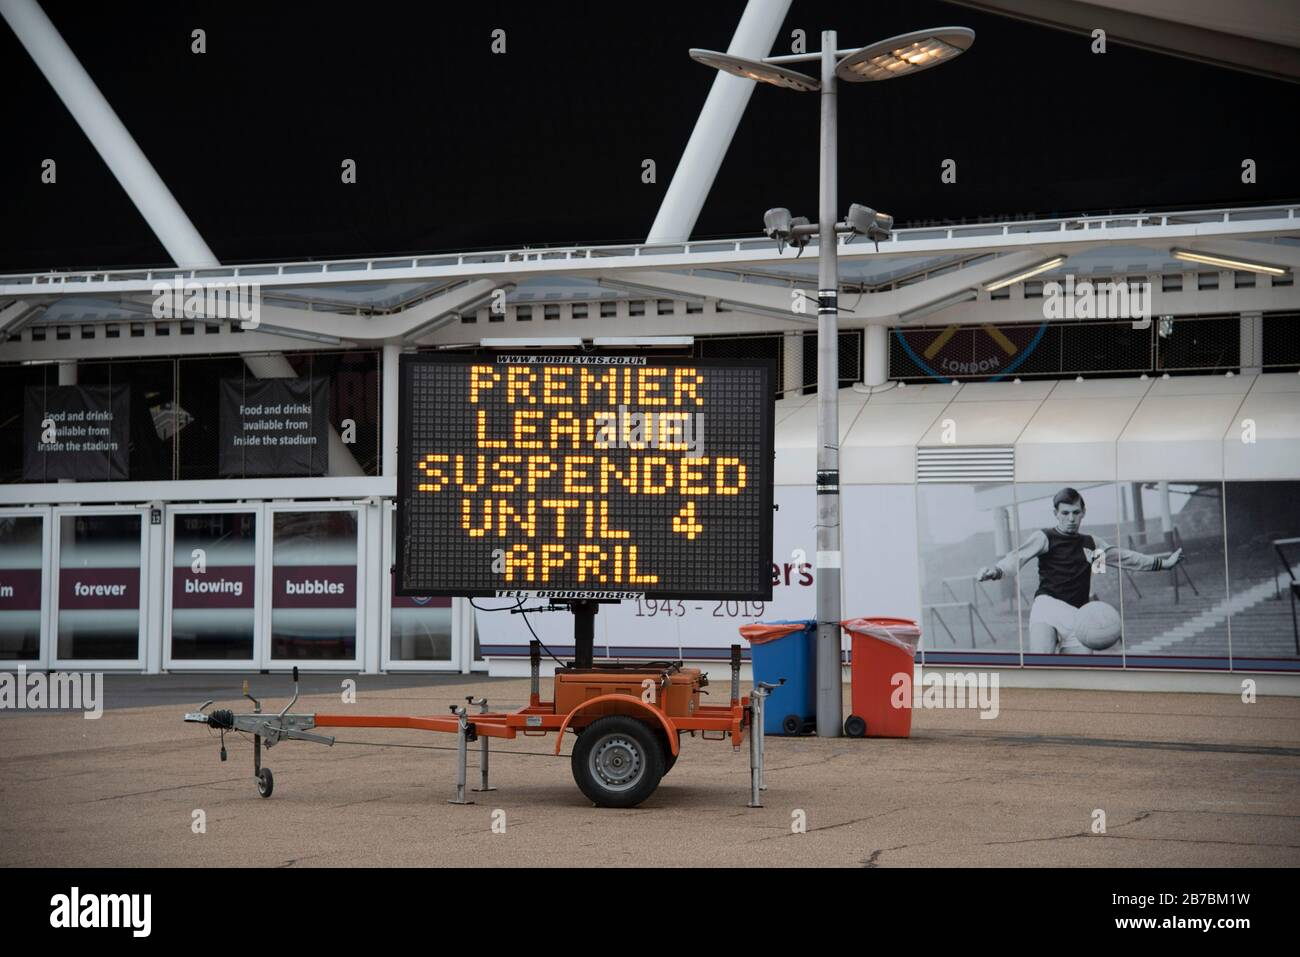 London, UK. 14th Mar, 2020. General view of West Ham United football club in London, UK on March 14, 2020. All Premier League matches are postponed until at least April 3, due to the Coronavirus (Covid-19) pandemic. 10 people in the UK have died in the last 24 hours from Covid- 19, bringing the number of deaths to 21. Mass gatherings could be banned in the UK from as early as next weekend as the outbreak of coronavirus intensifies. (Photo by Claire Doherty/Sipa USA) Credit: Sipa USA/Alamy Live News Stock Photo